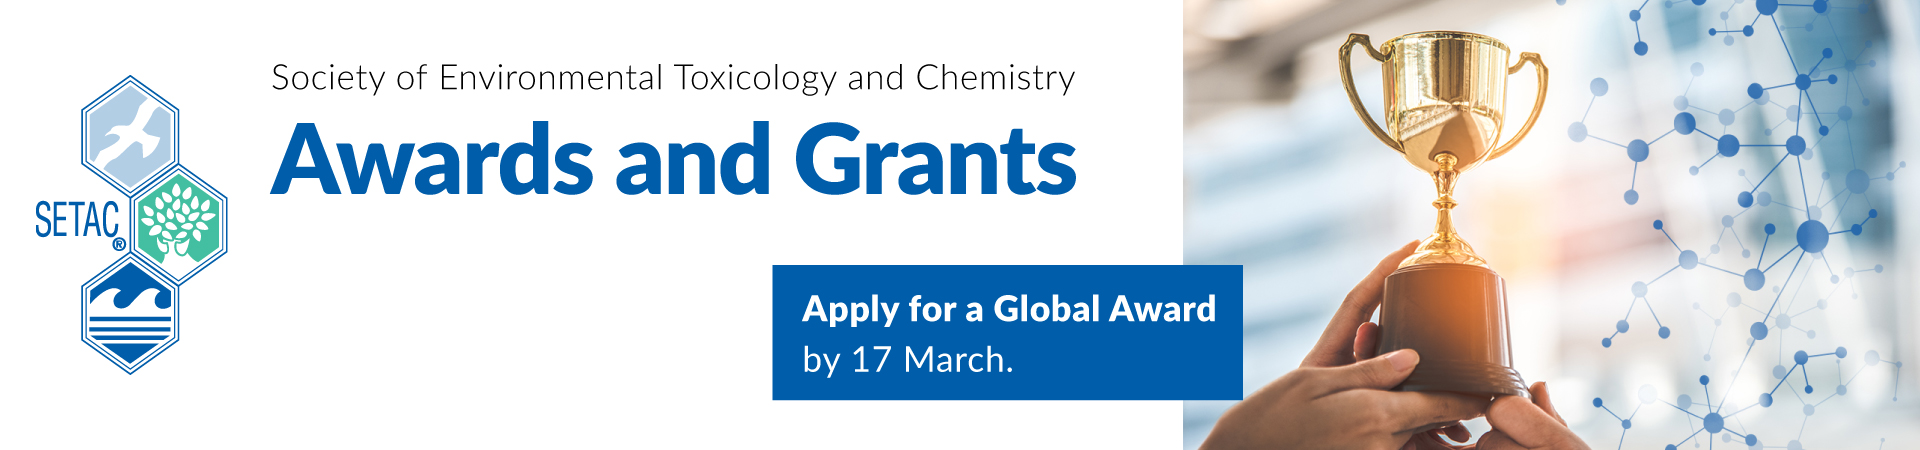 Apply for a SETAC Global award by 17 March